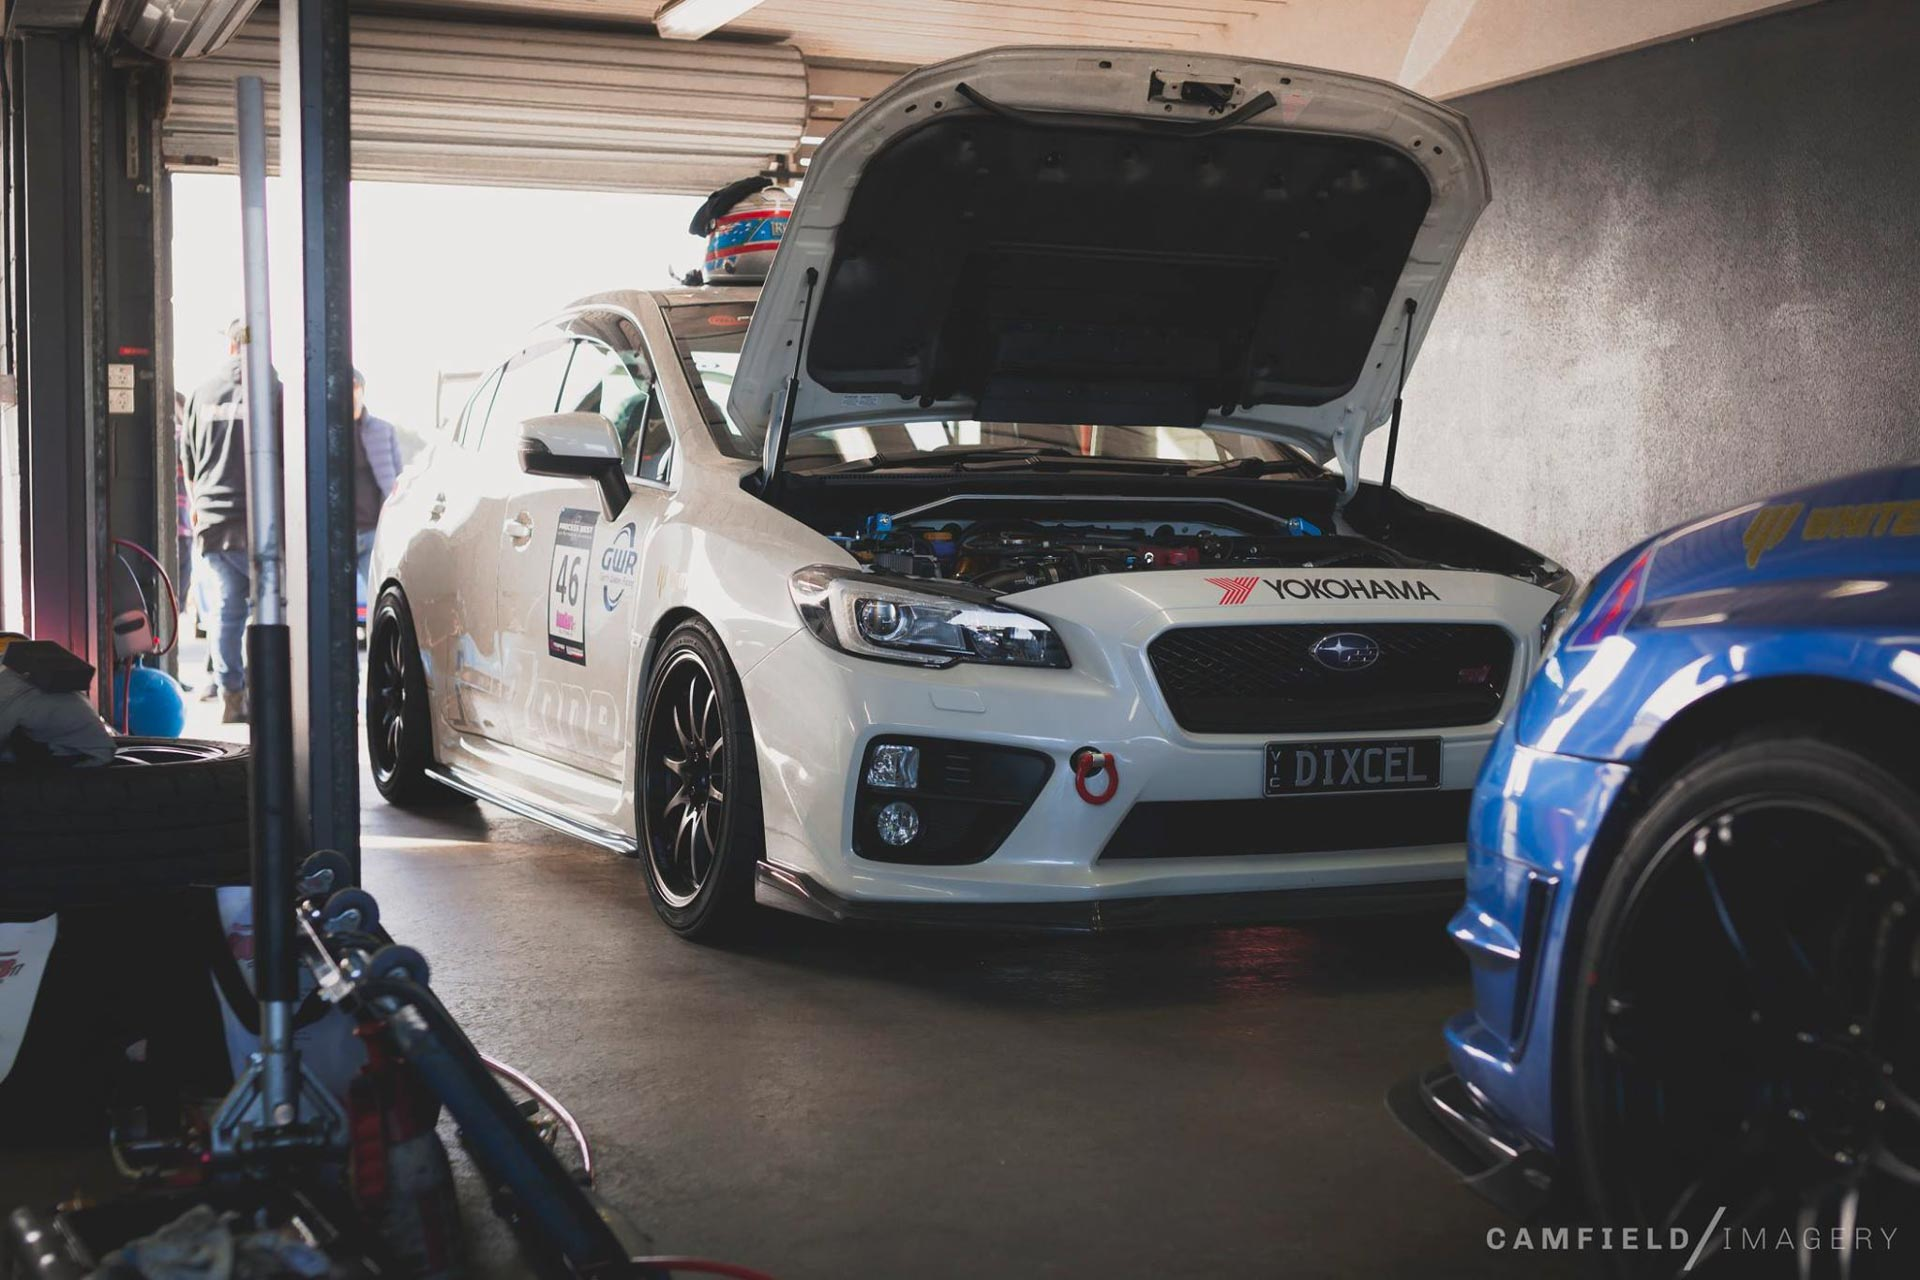 Subaru 3 Subaru Subarus are a very popular brand in today's performance market and with every new model, there are changes both mechanically and electronically that may make it a bit confusing for you – the car enthusiast.